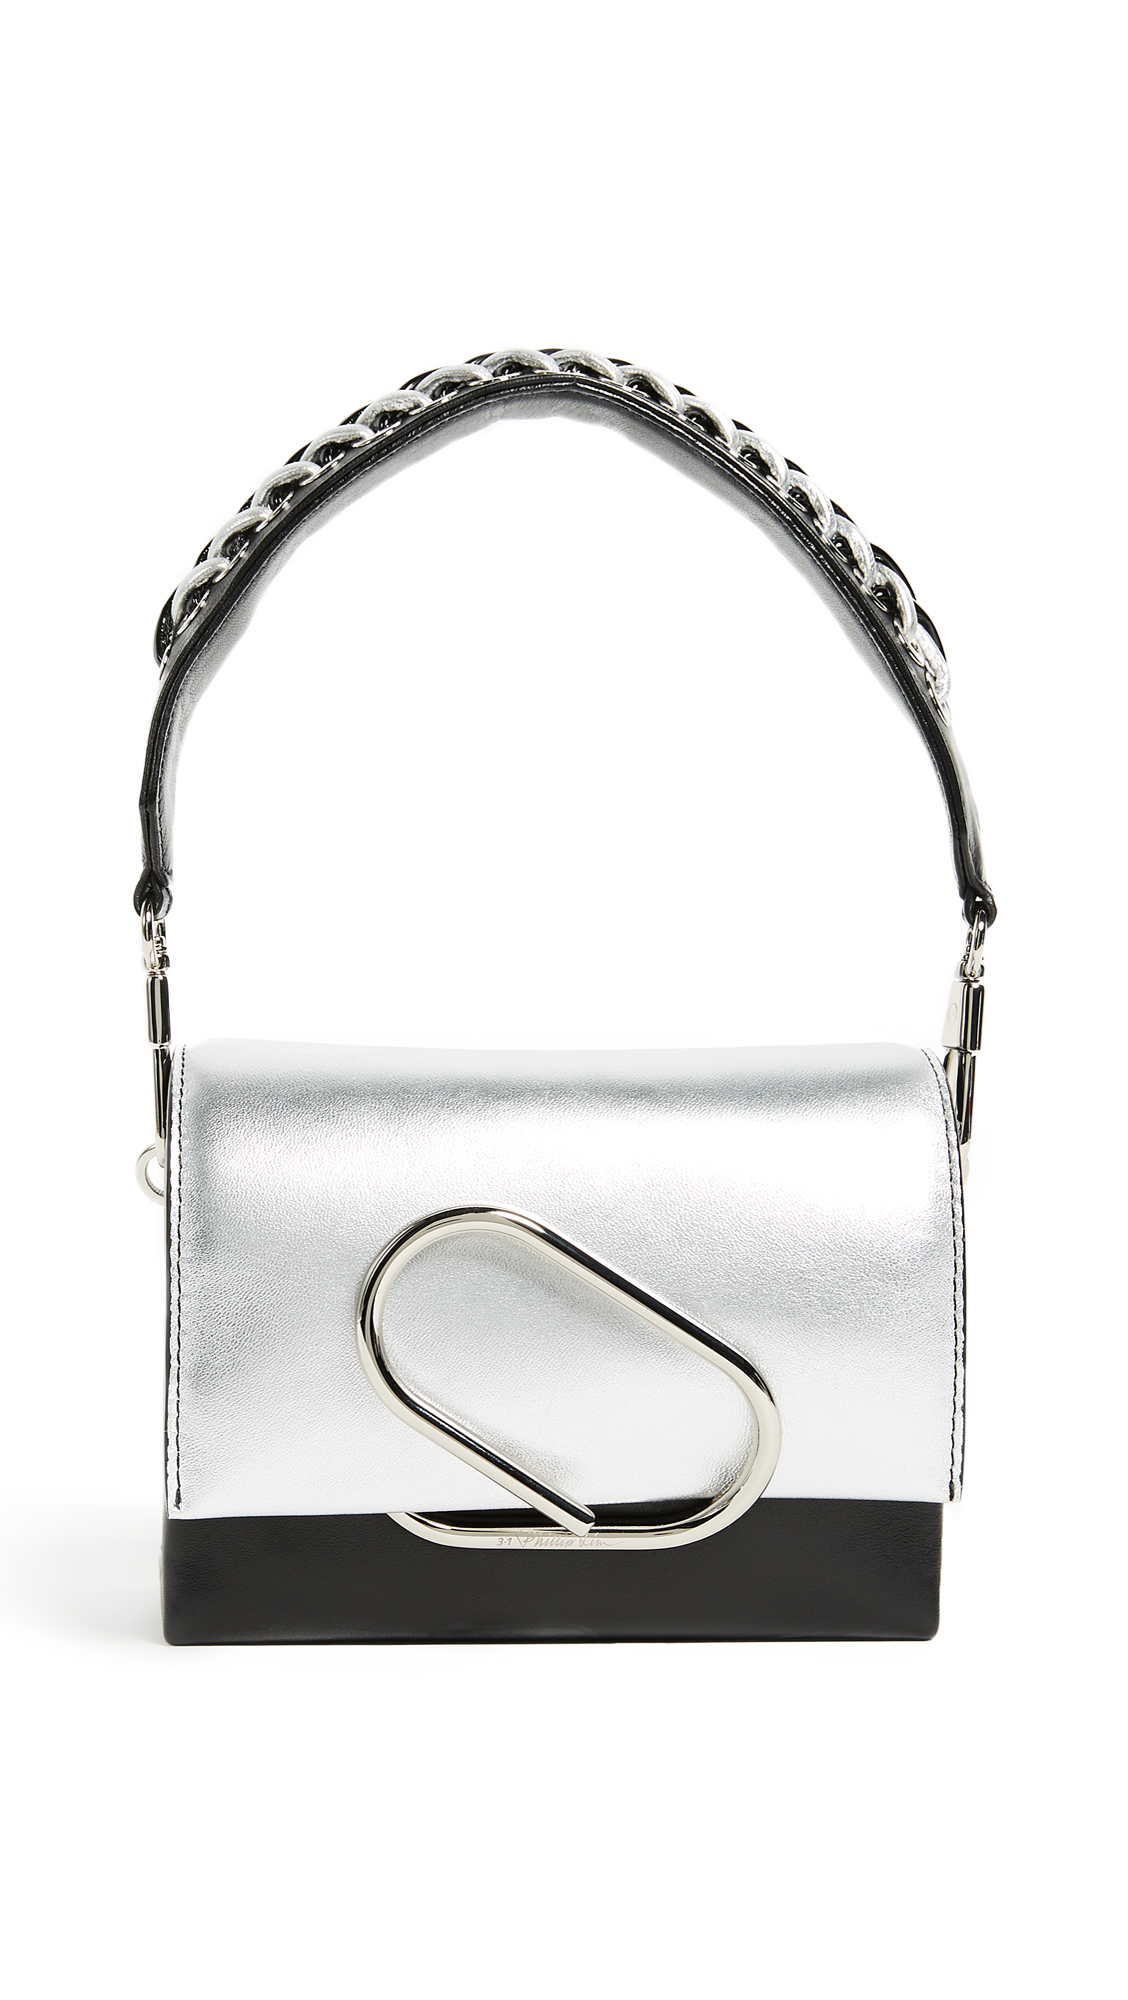 3.1 Phillip Lim Alix Micro Sport Cross Body Bag - Silver/Black